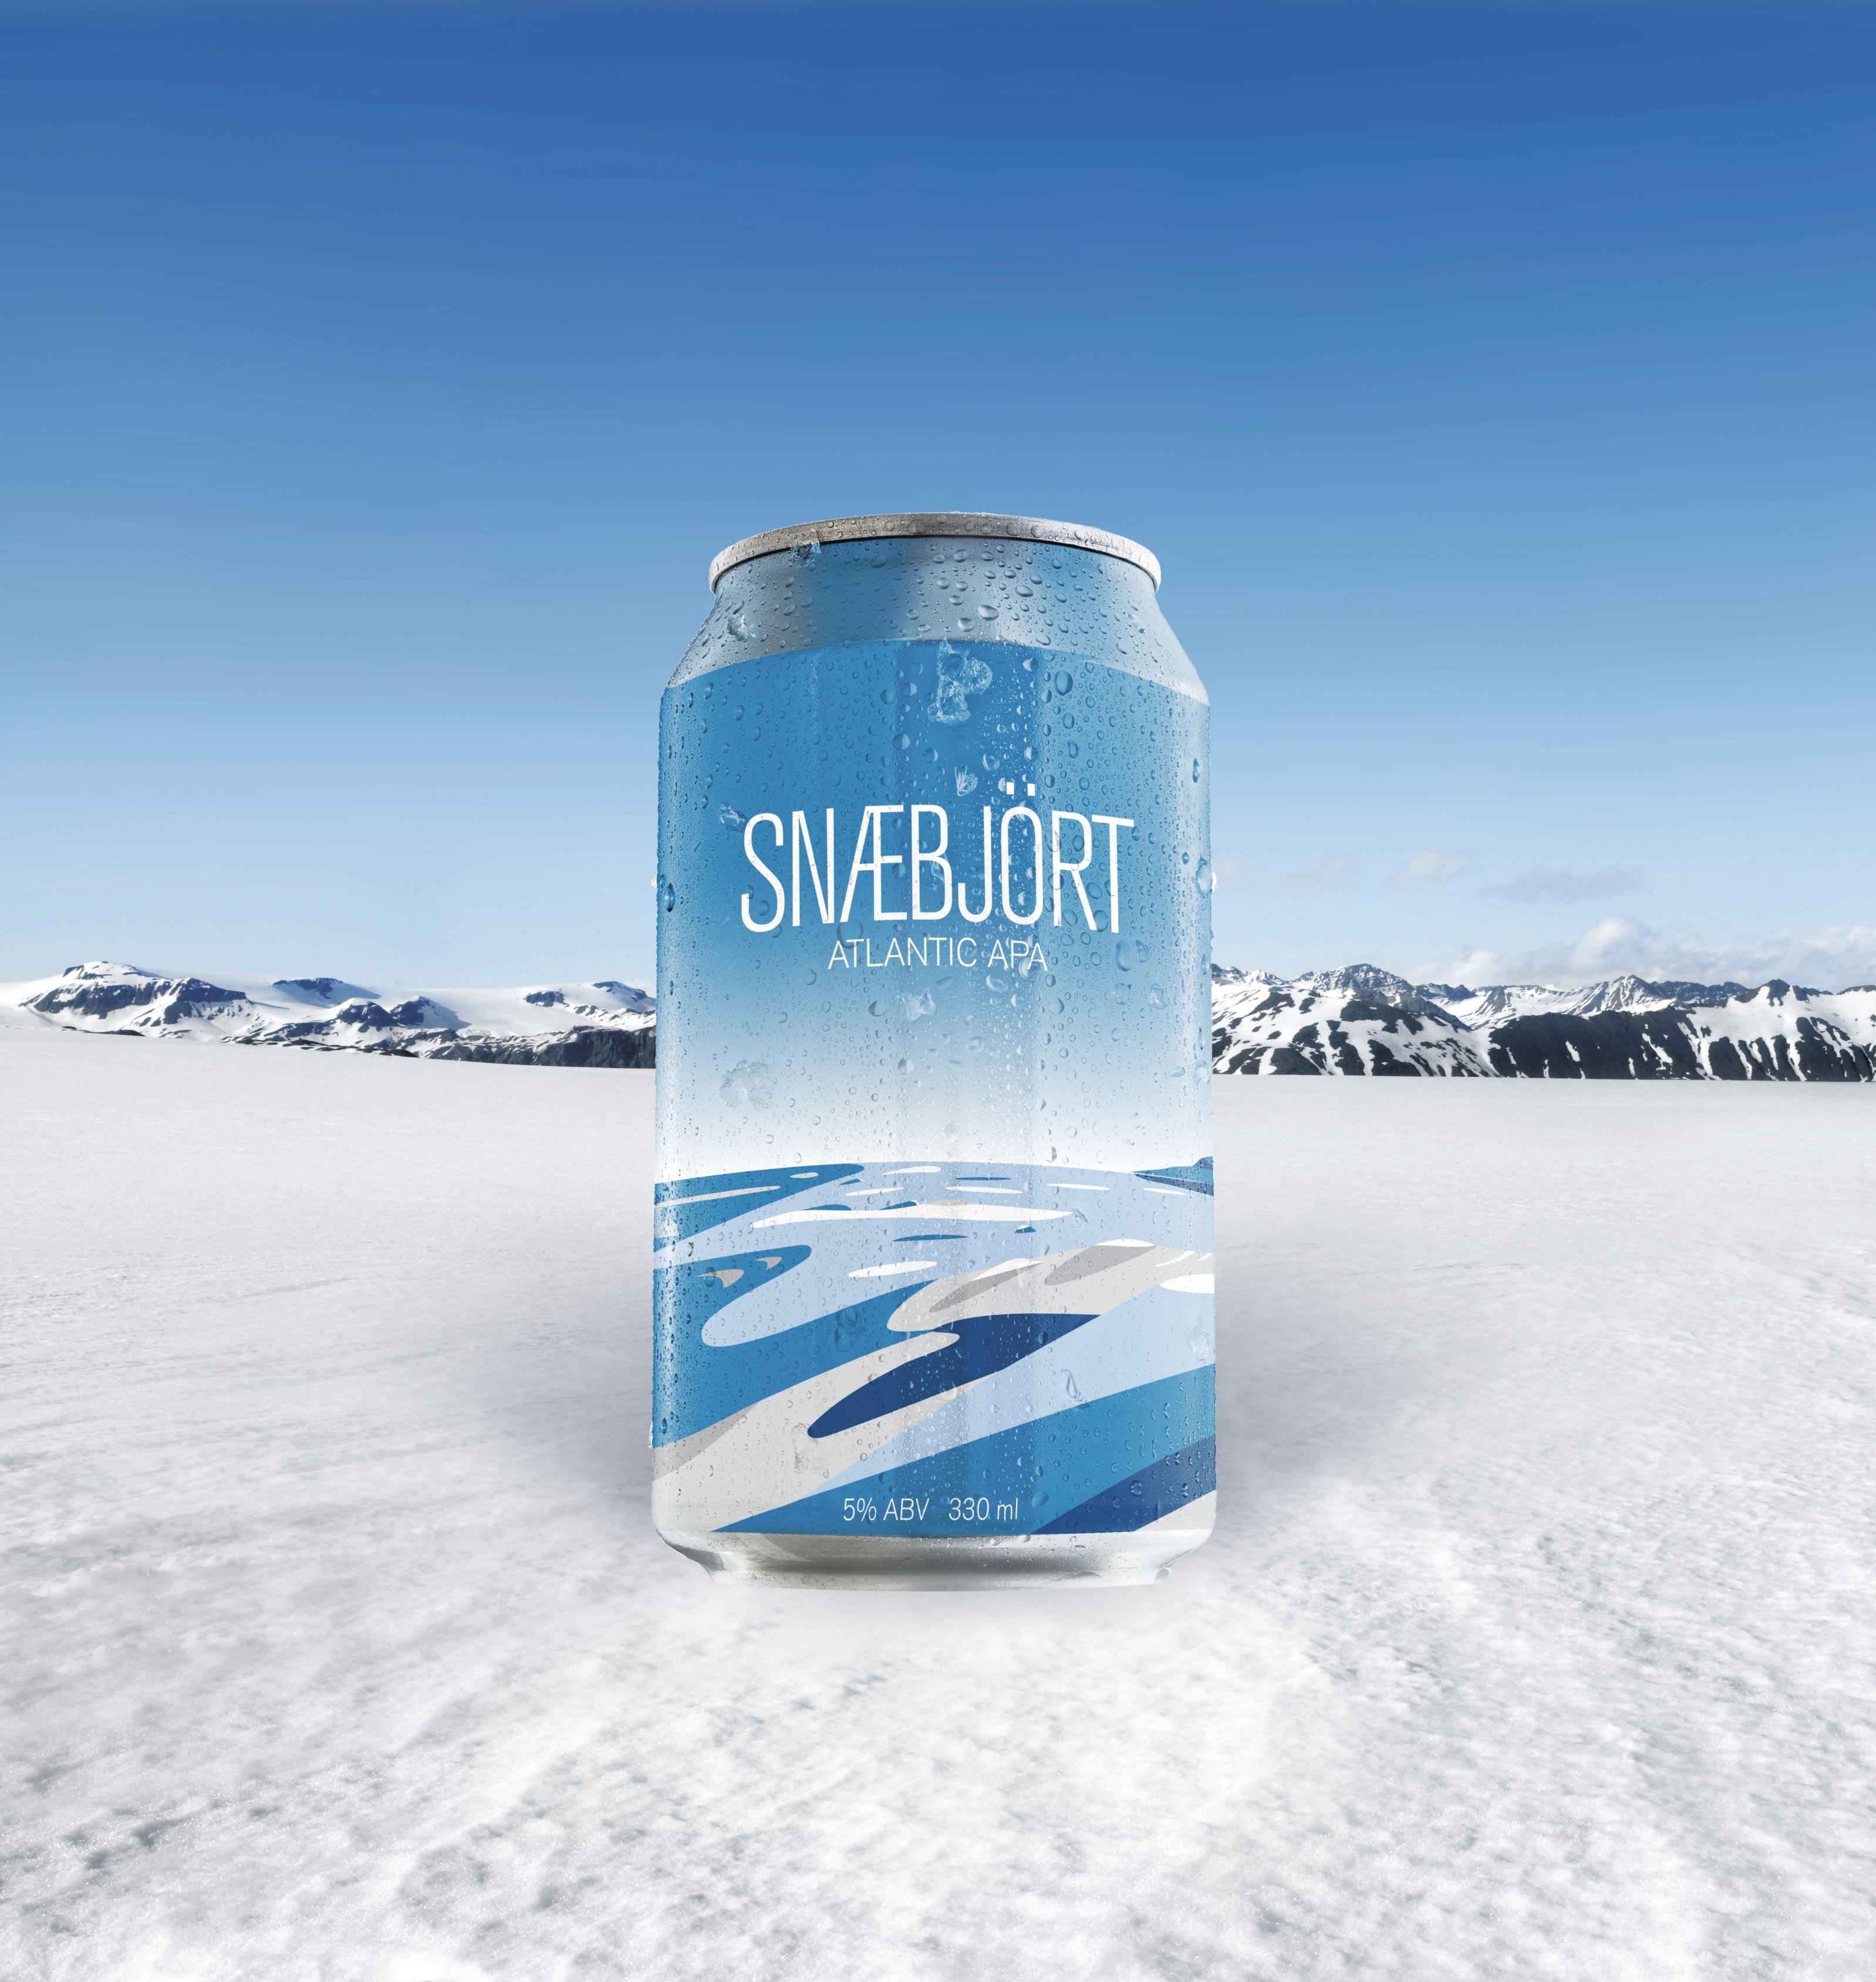 Snaebjort Icelandic beer pictured against a snowy landscape in Iceland